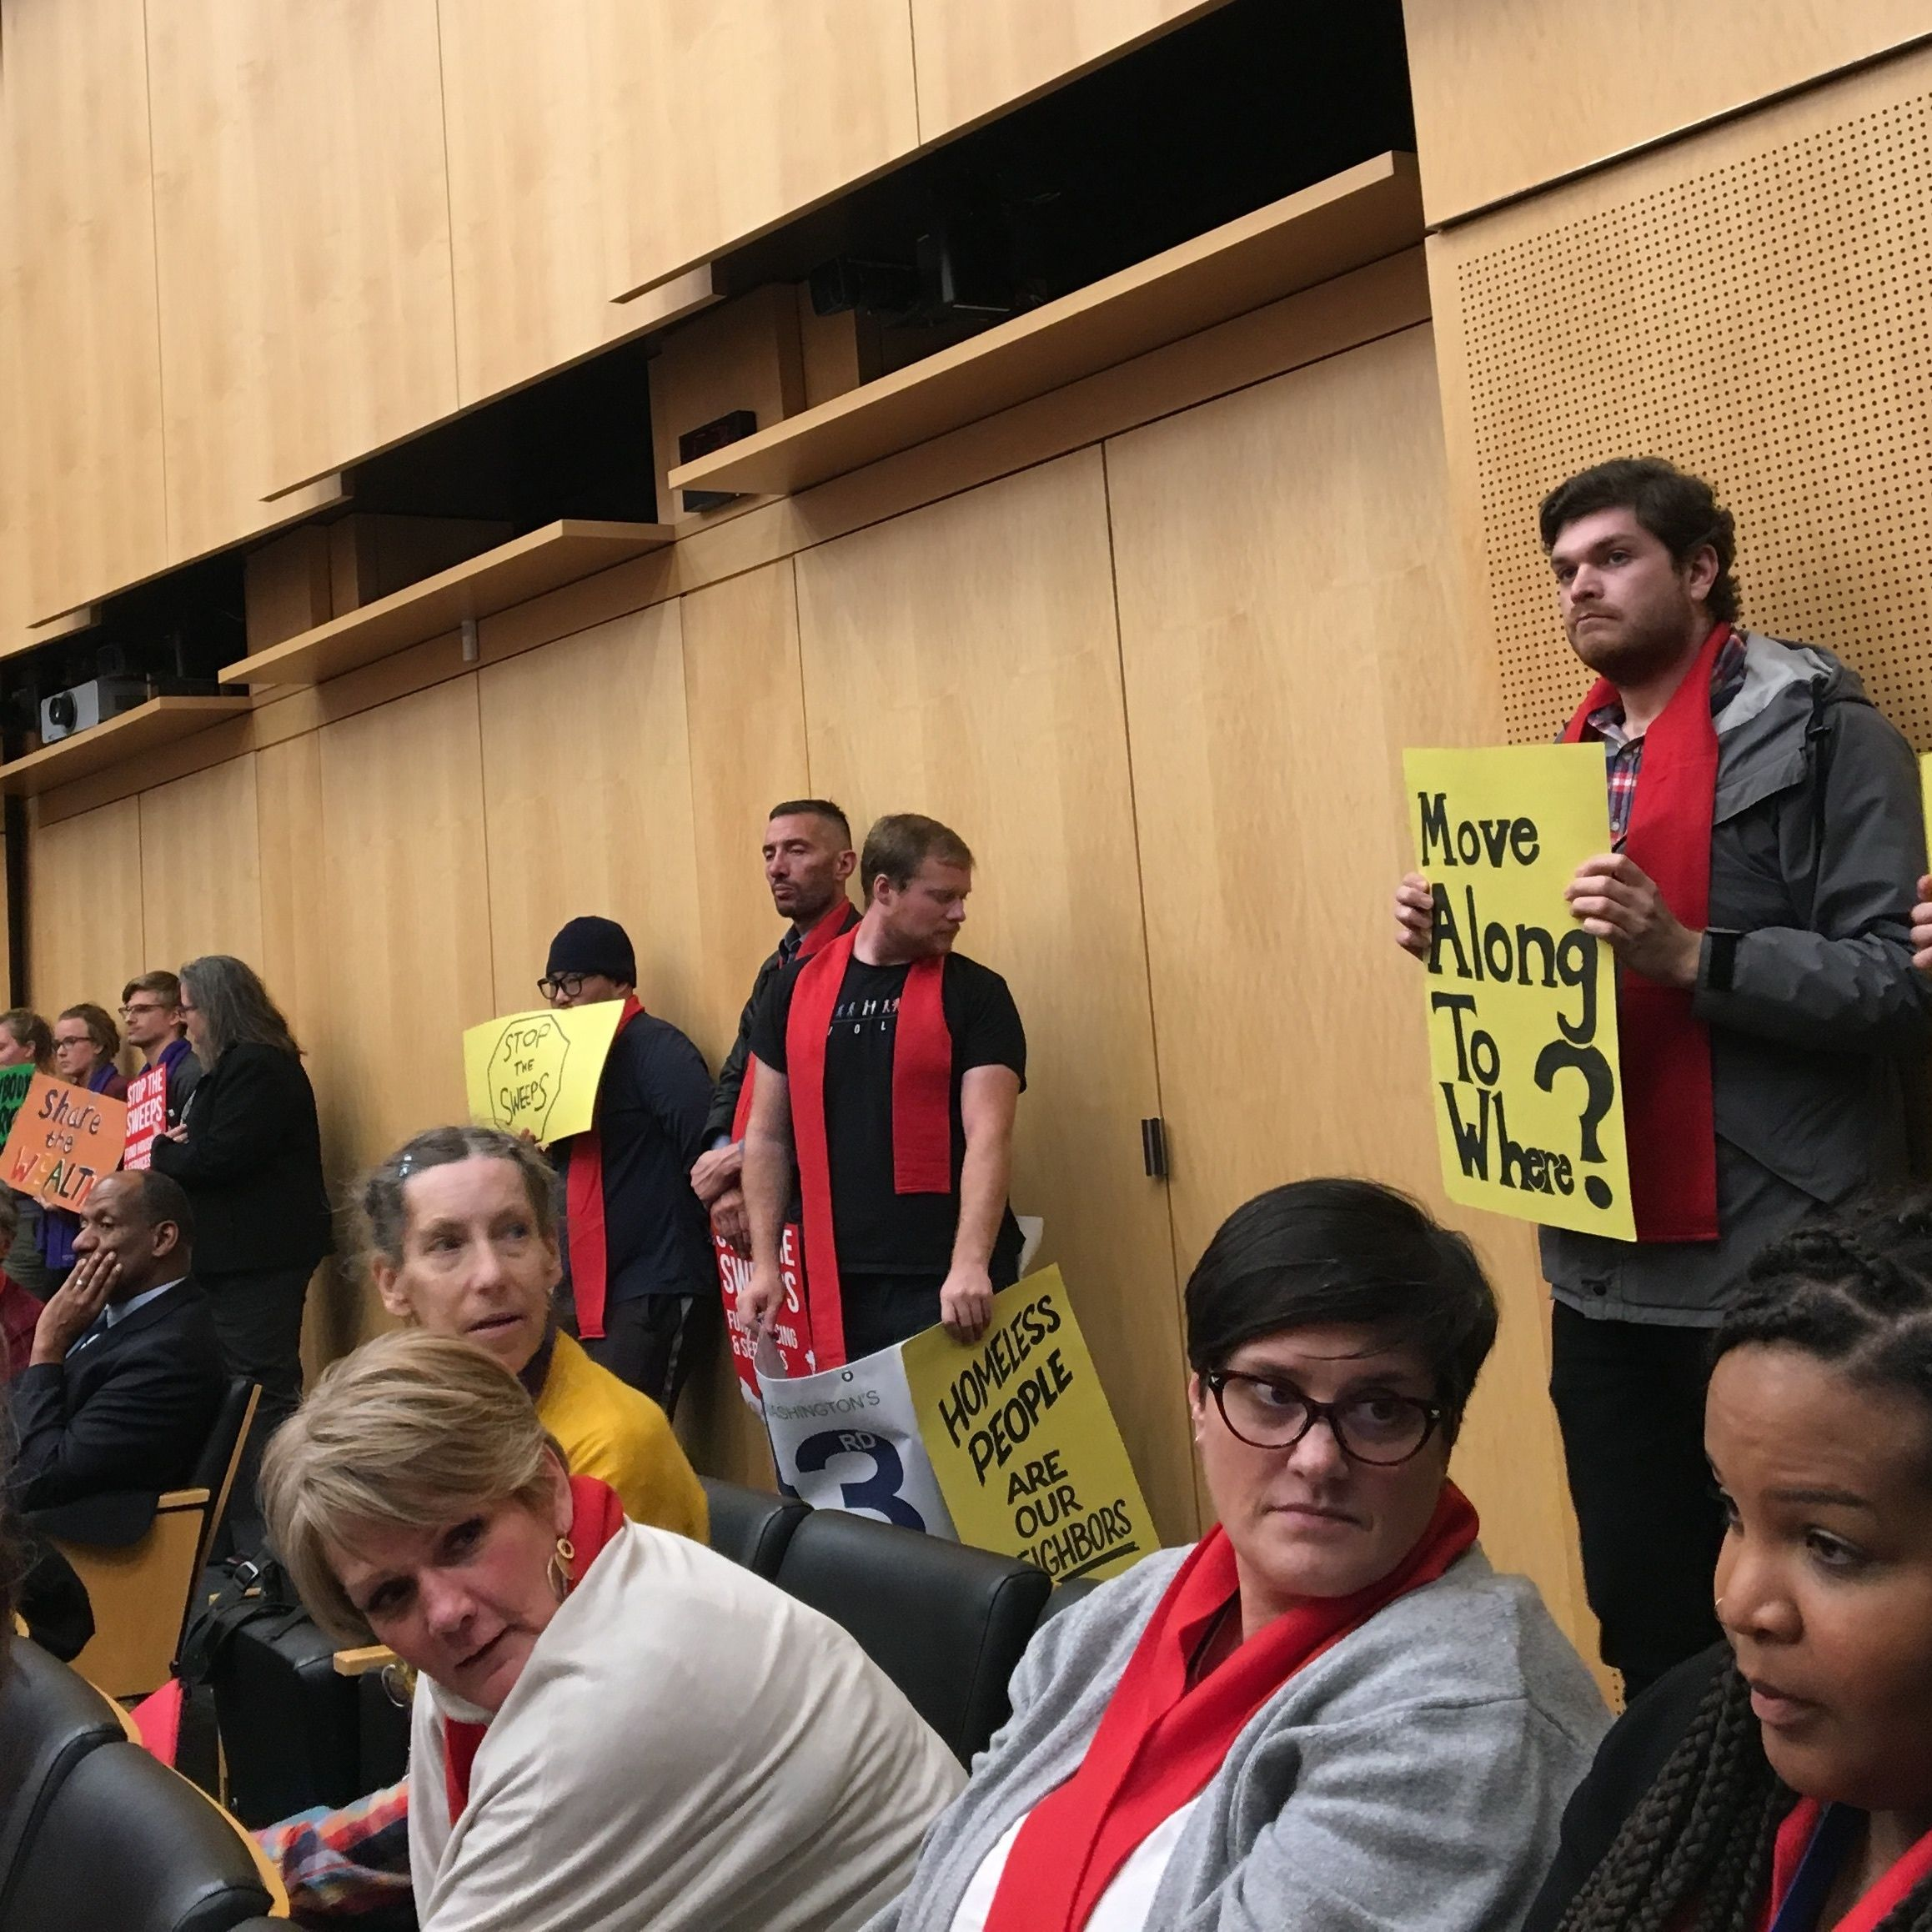 Housing for all coalition sweeps head tax budget committee hearing oeddd3